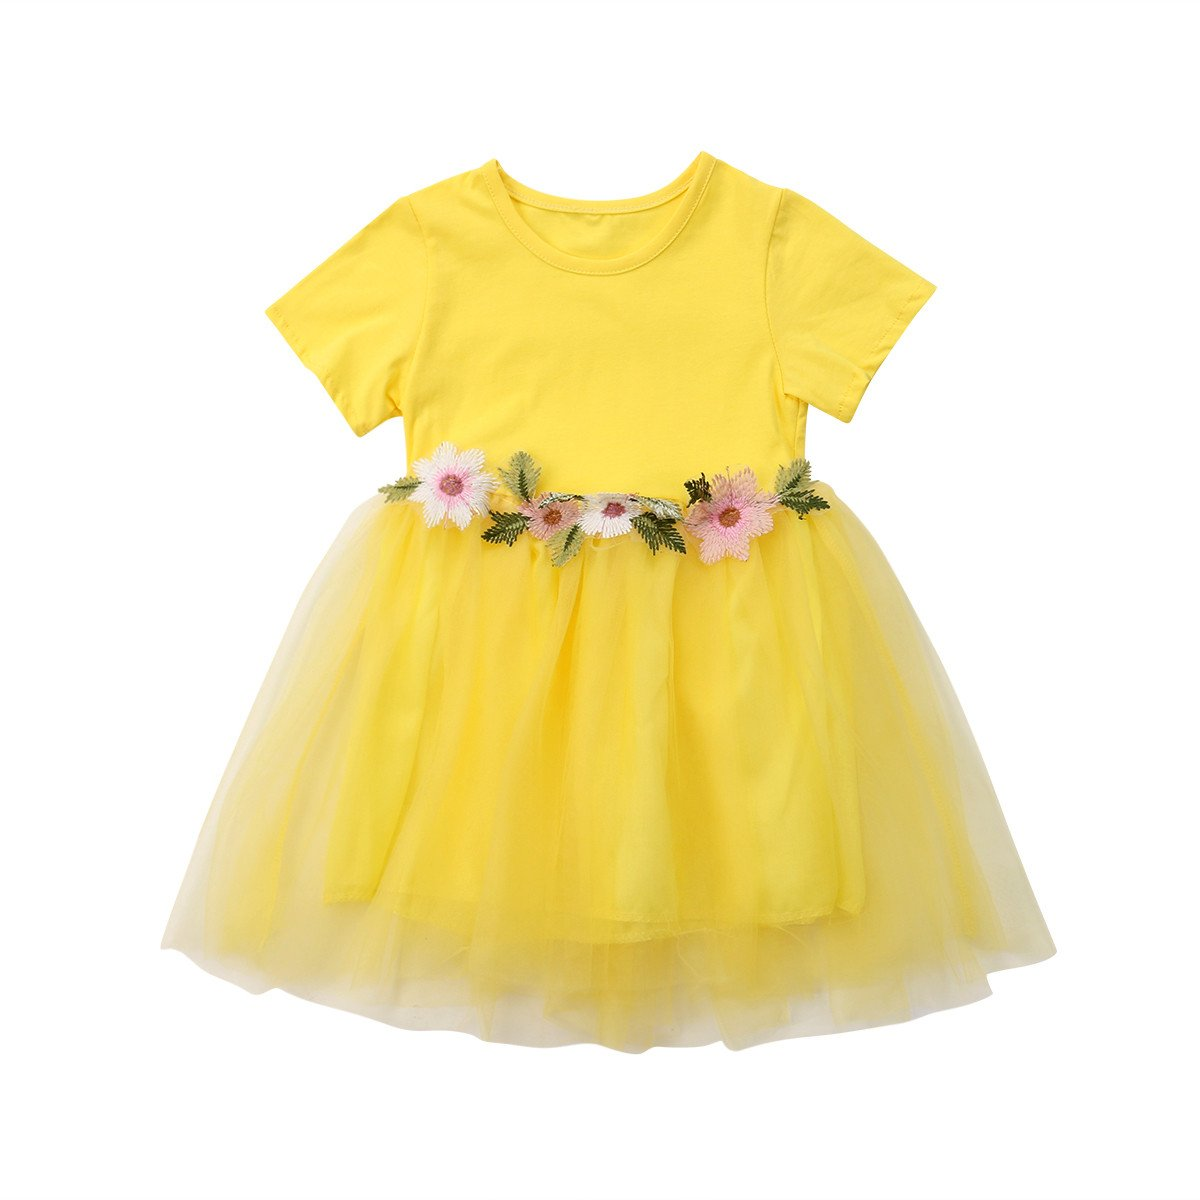 8b9a78cce4c9 Amazon.com: Mornbaby Toddler Kids Baby Girls Knitted Tulle Cap Tutu Dresses  Jersey Dress Outfit: Clothing